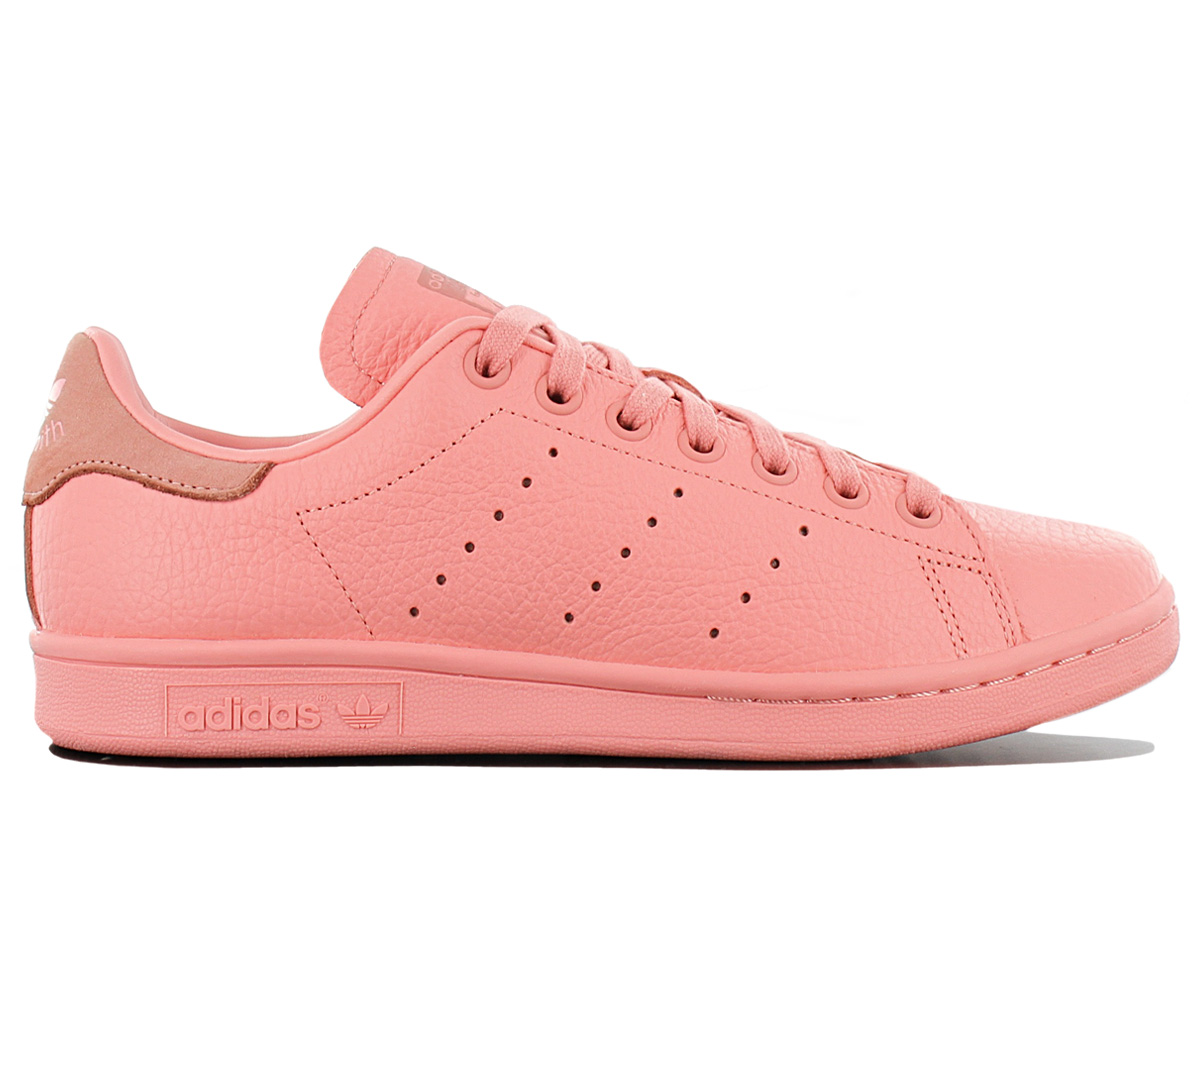 9d6687192ddcf Details about Adidas Originals Stan Smith Women's Sneakers Bz0469 Leather  Rosa Shoes Trainers